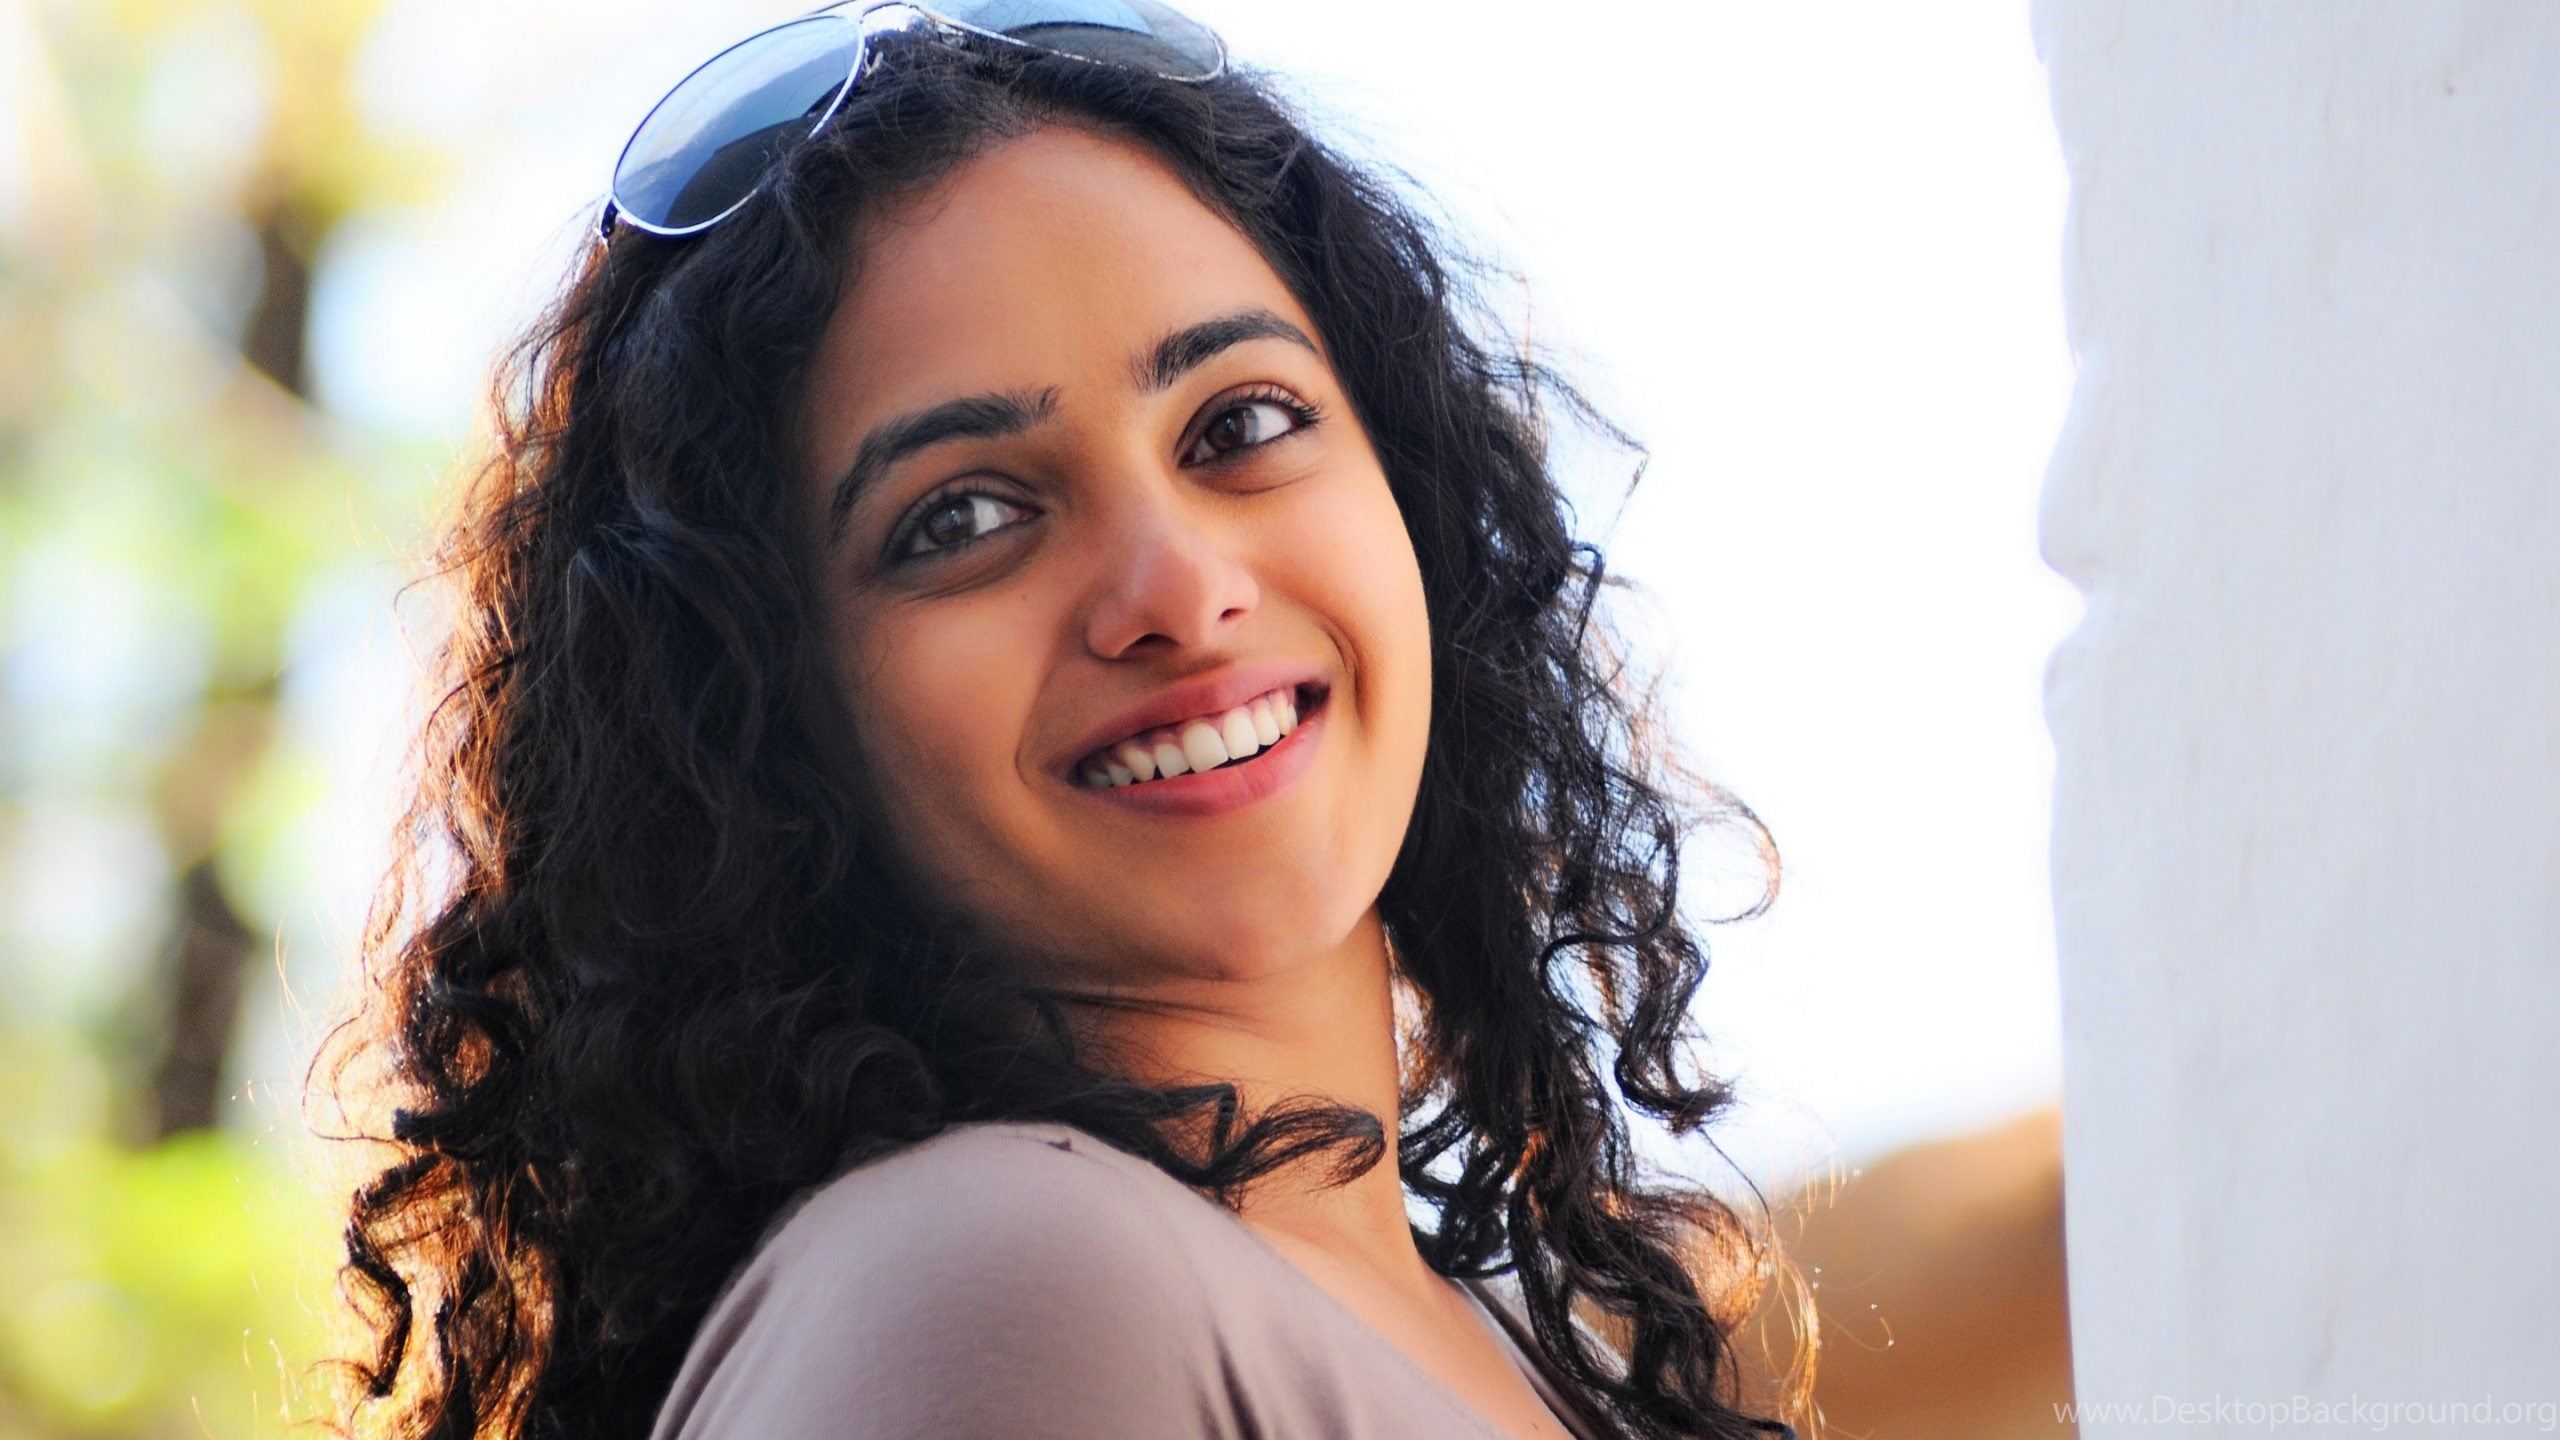 south indian actress nithya menon wide monitor hd wallpapers 4k desktop background south indian actress nithya menon wide